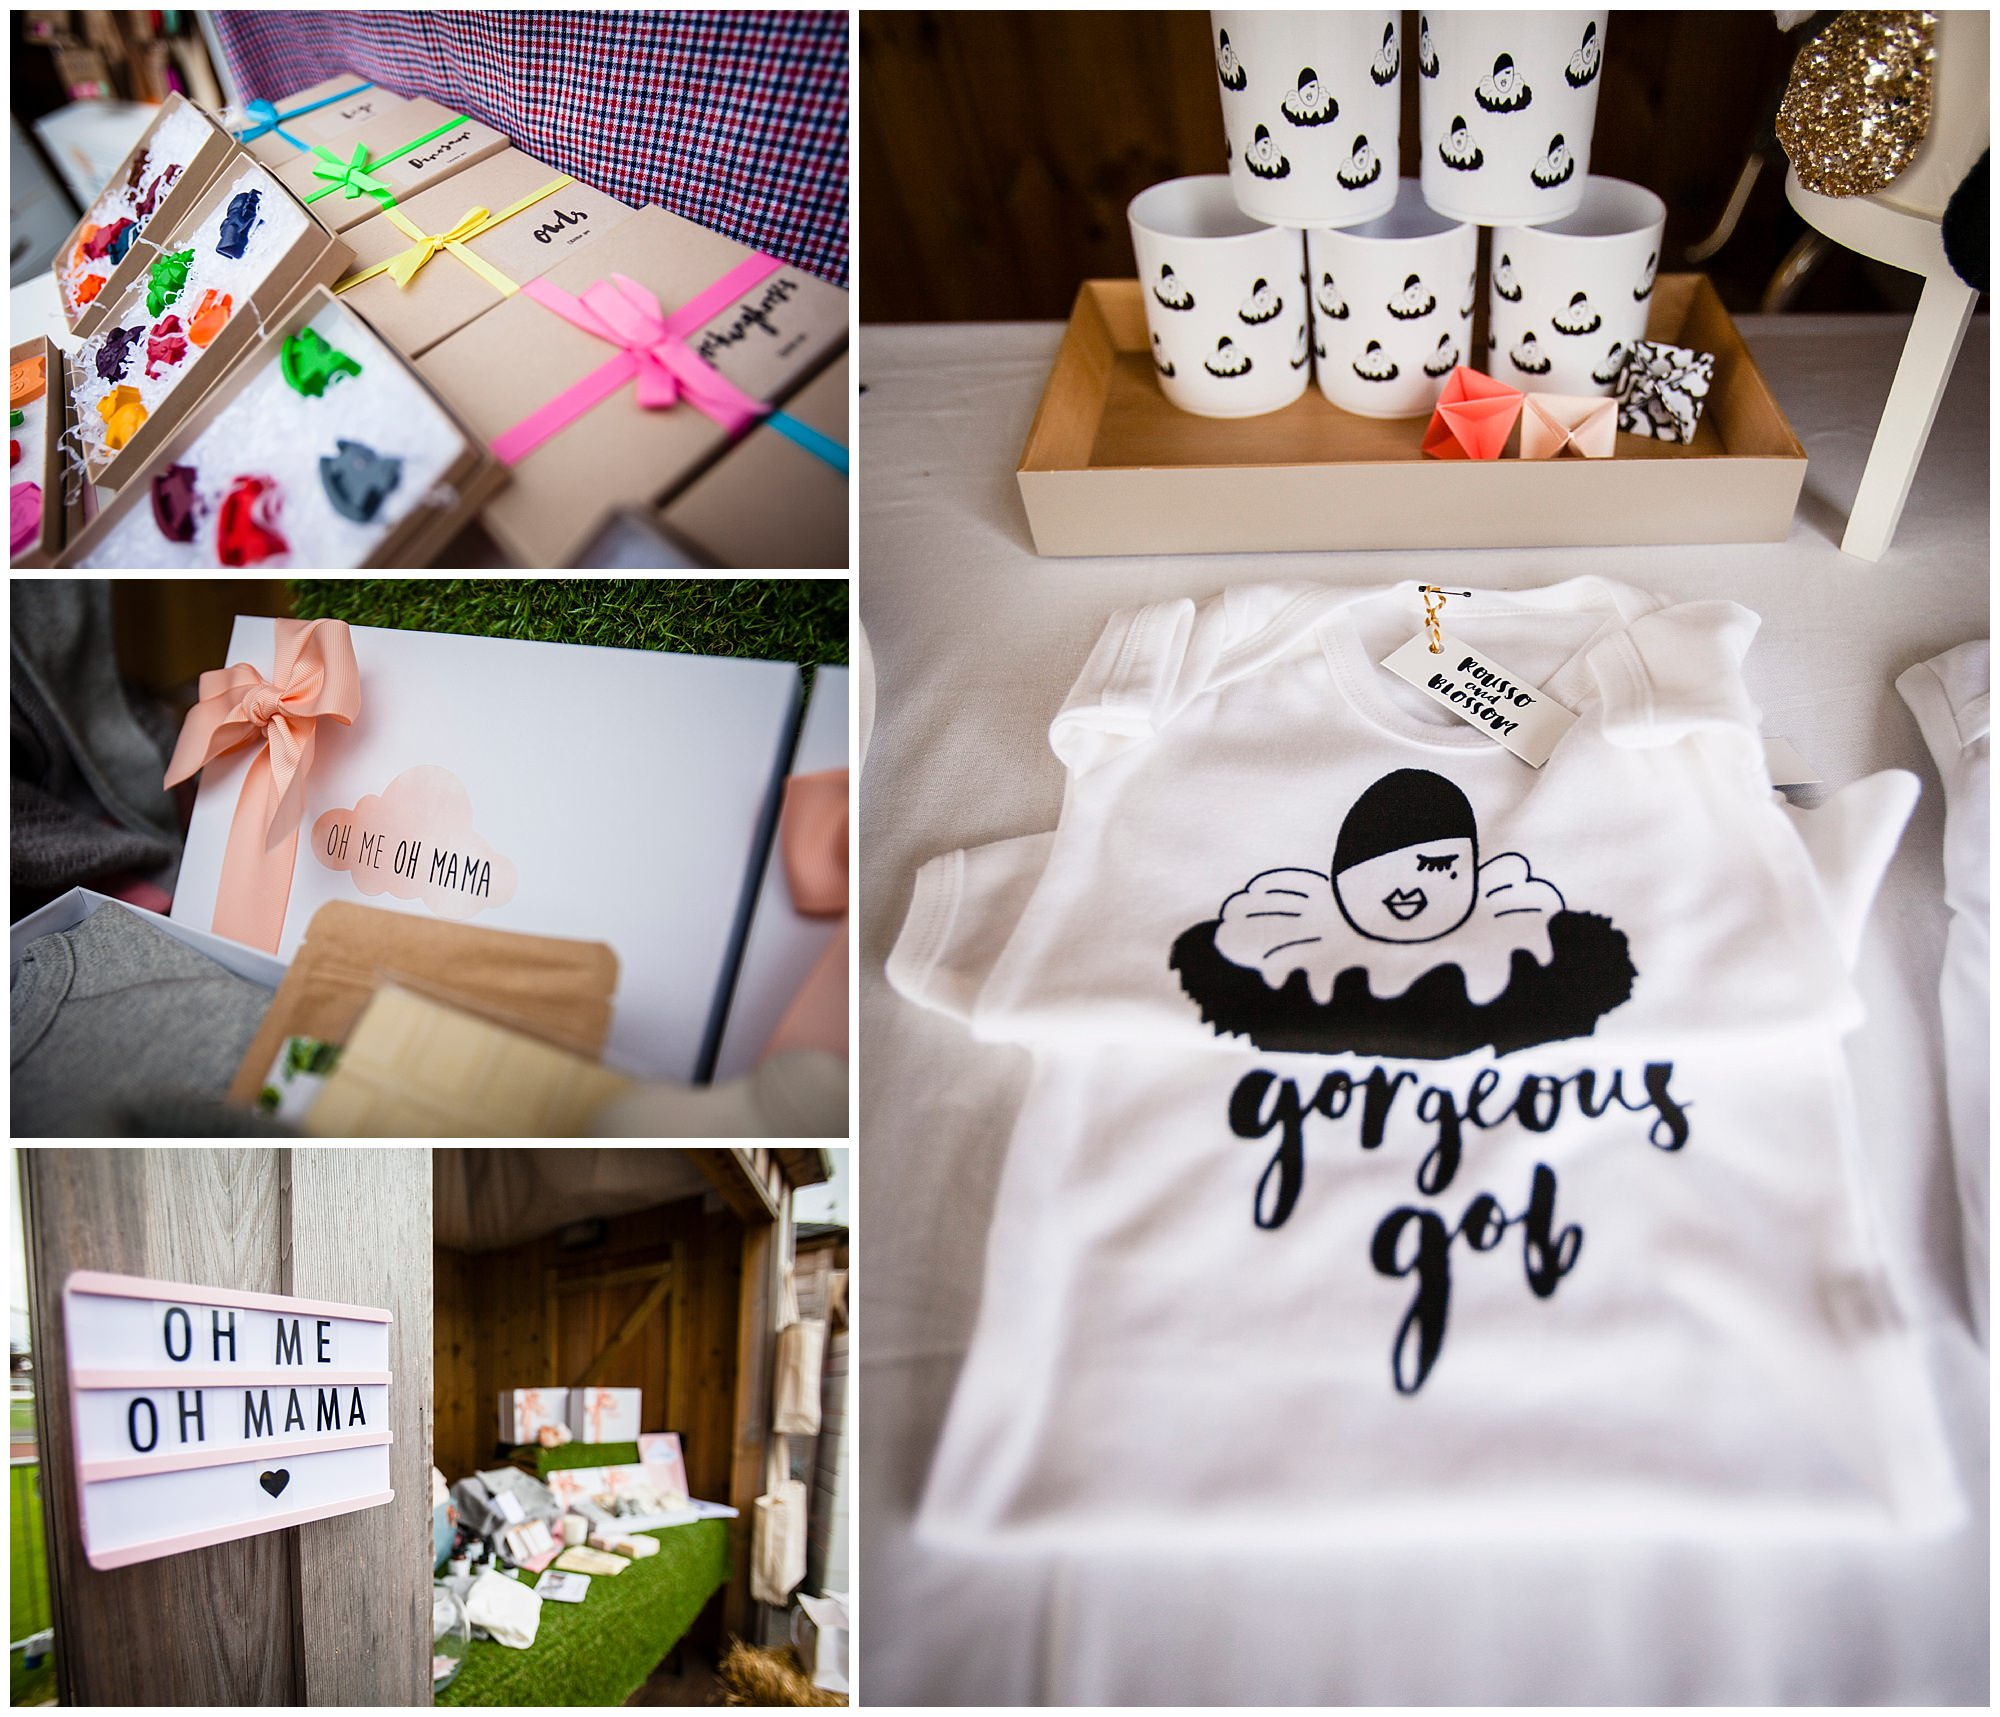 baby items at vendor stalls captured by cheshire family event photographer